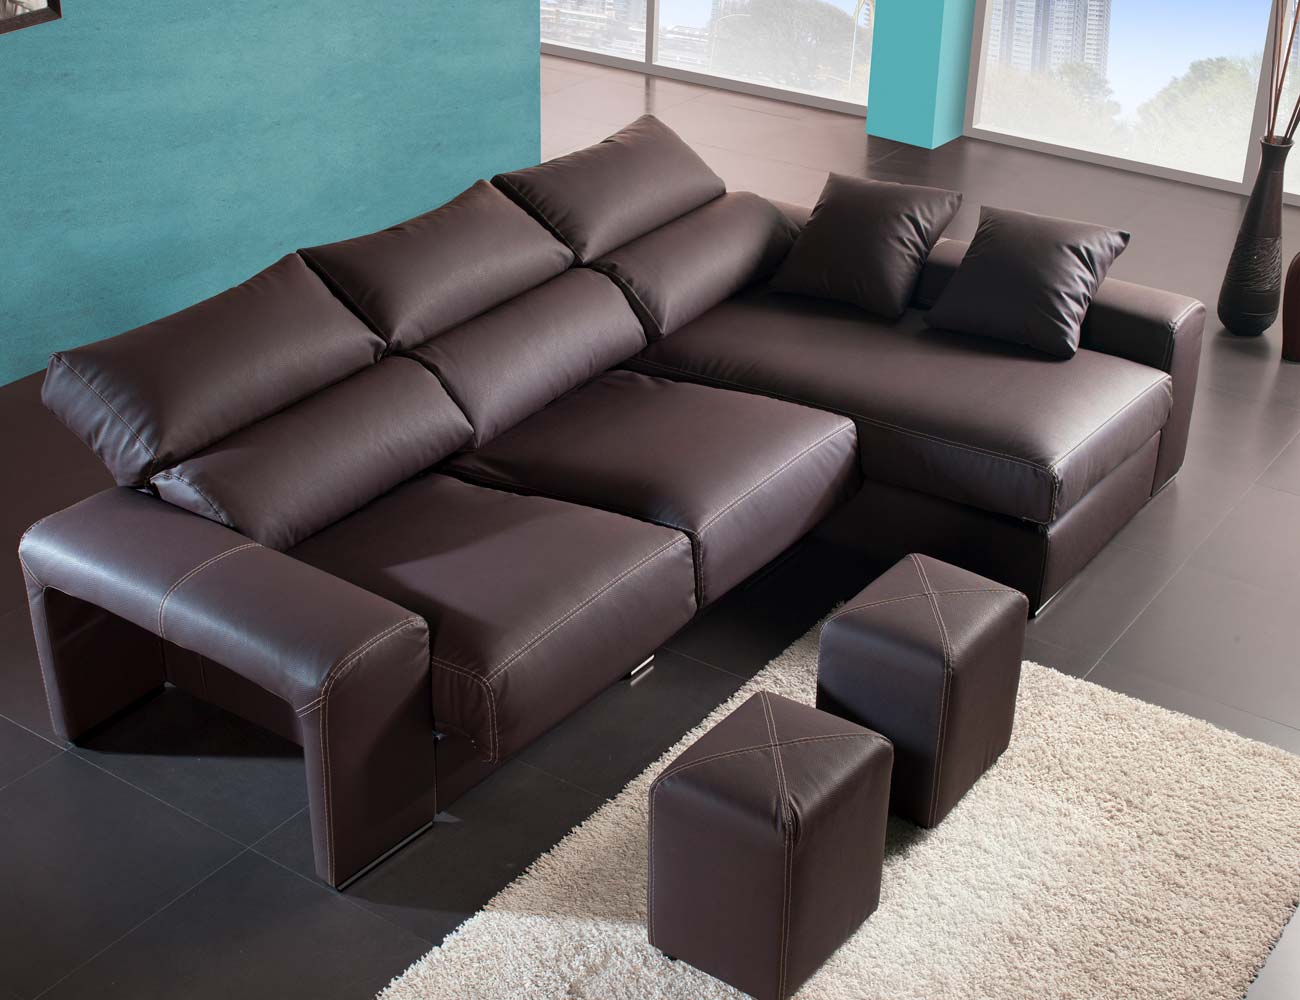 Sofa chaiselongue moderno polipiel chocolate poufs taburetes30